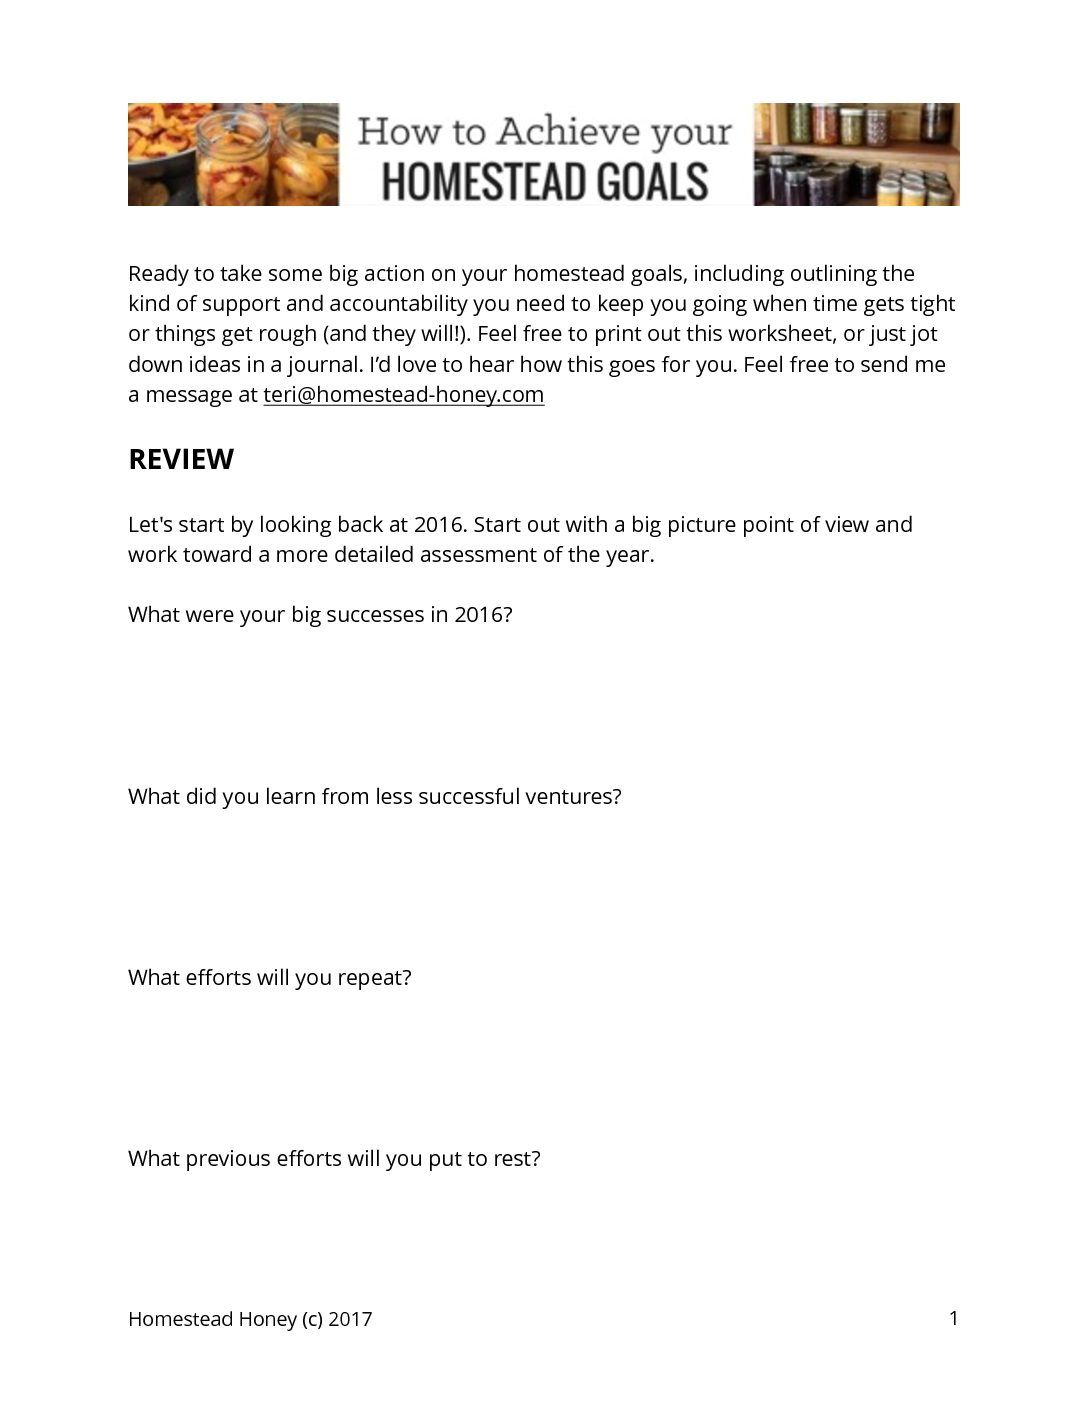 How To Achieve Your Homesteading Goals  Free Worksheets